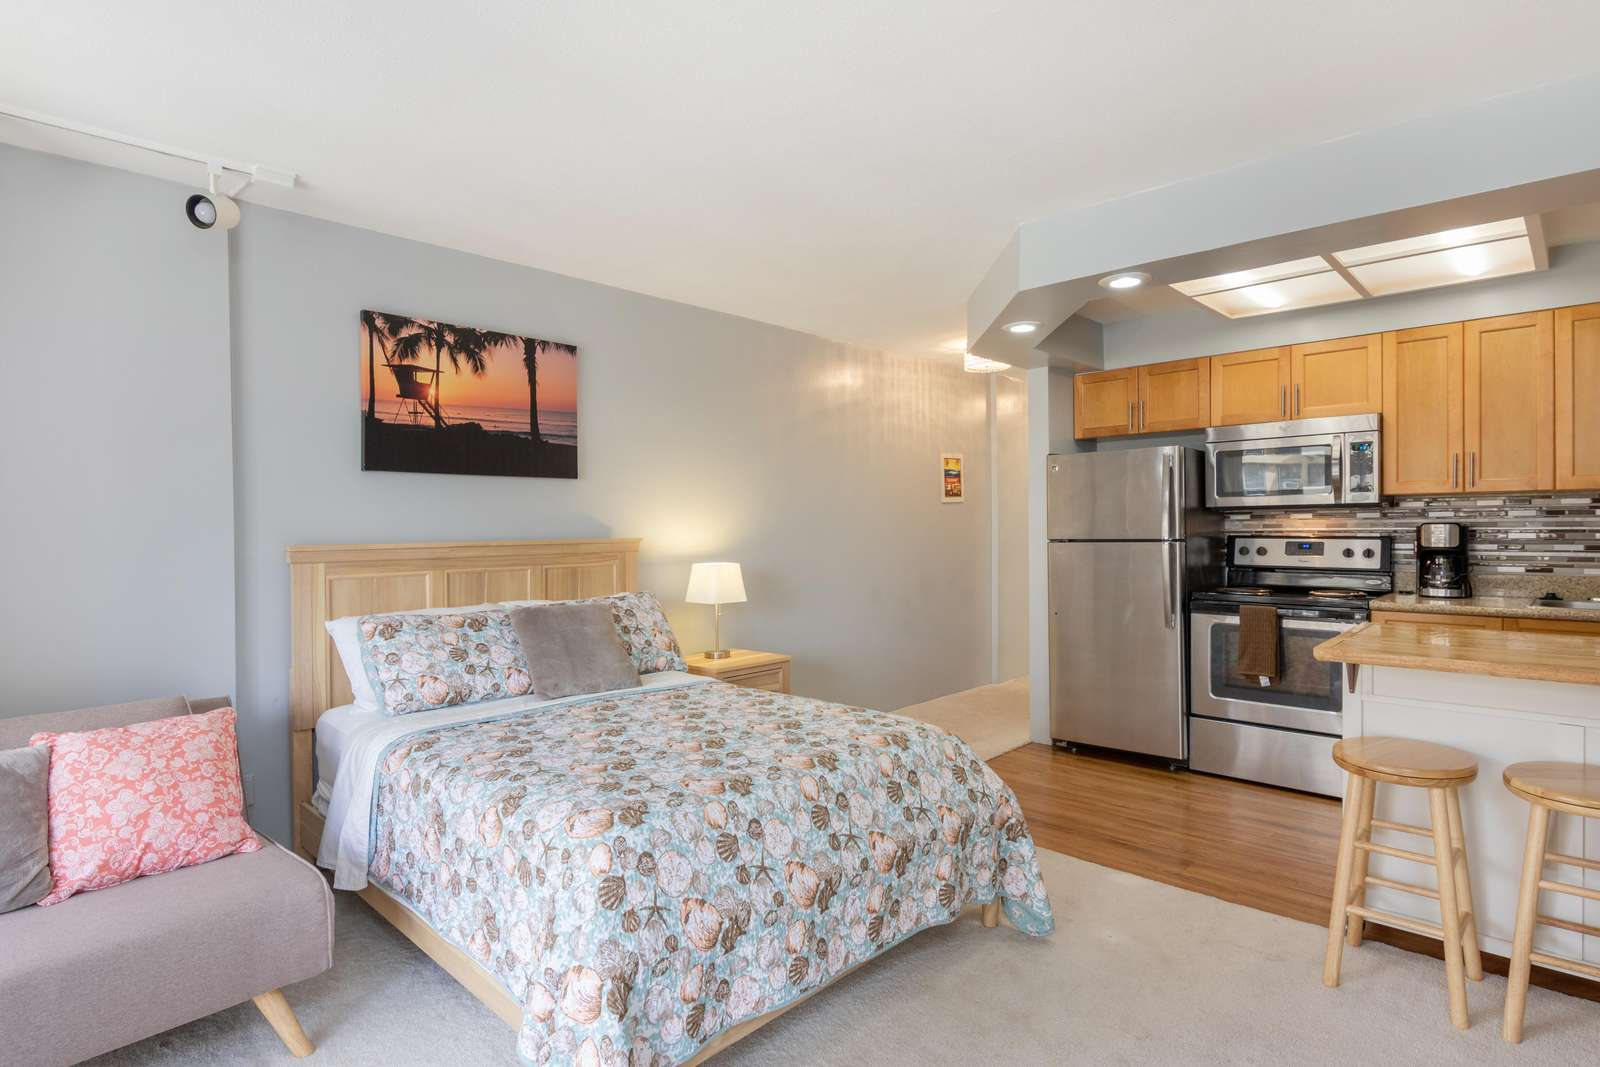 View of Full Size Bed & Kitchen